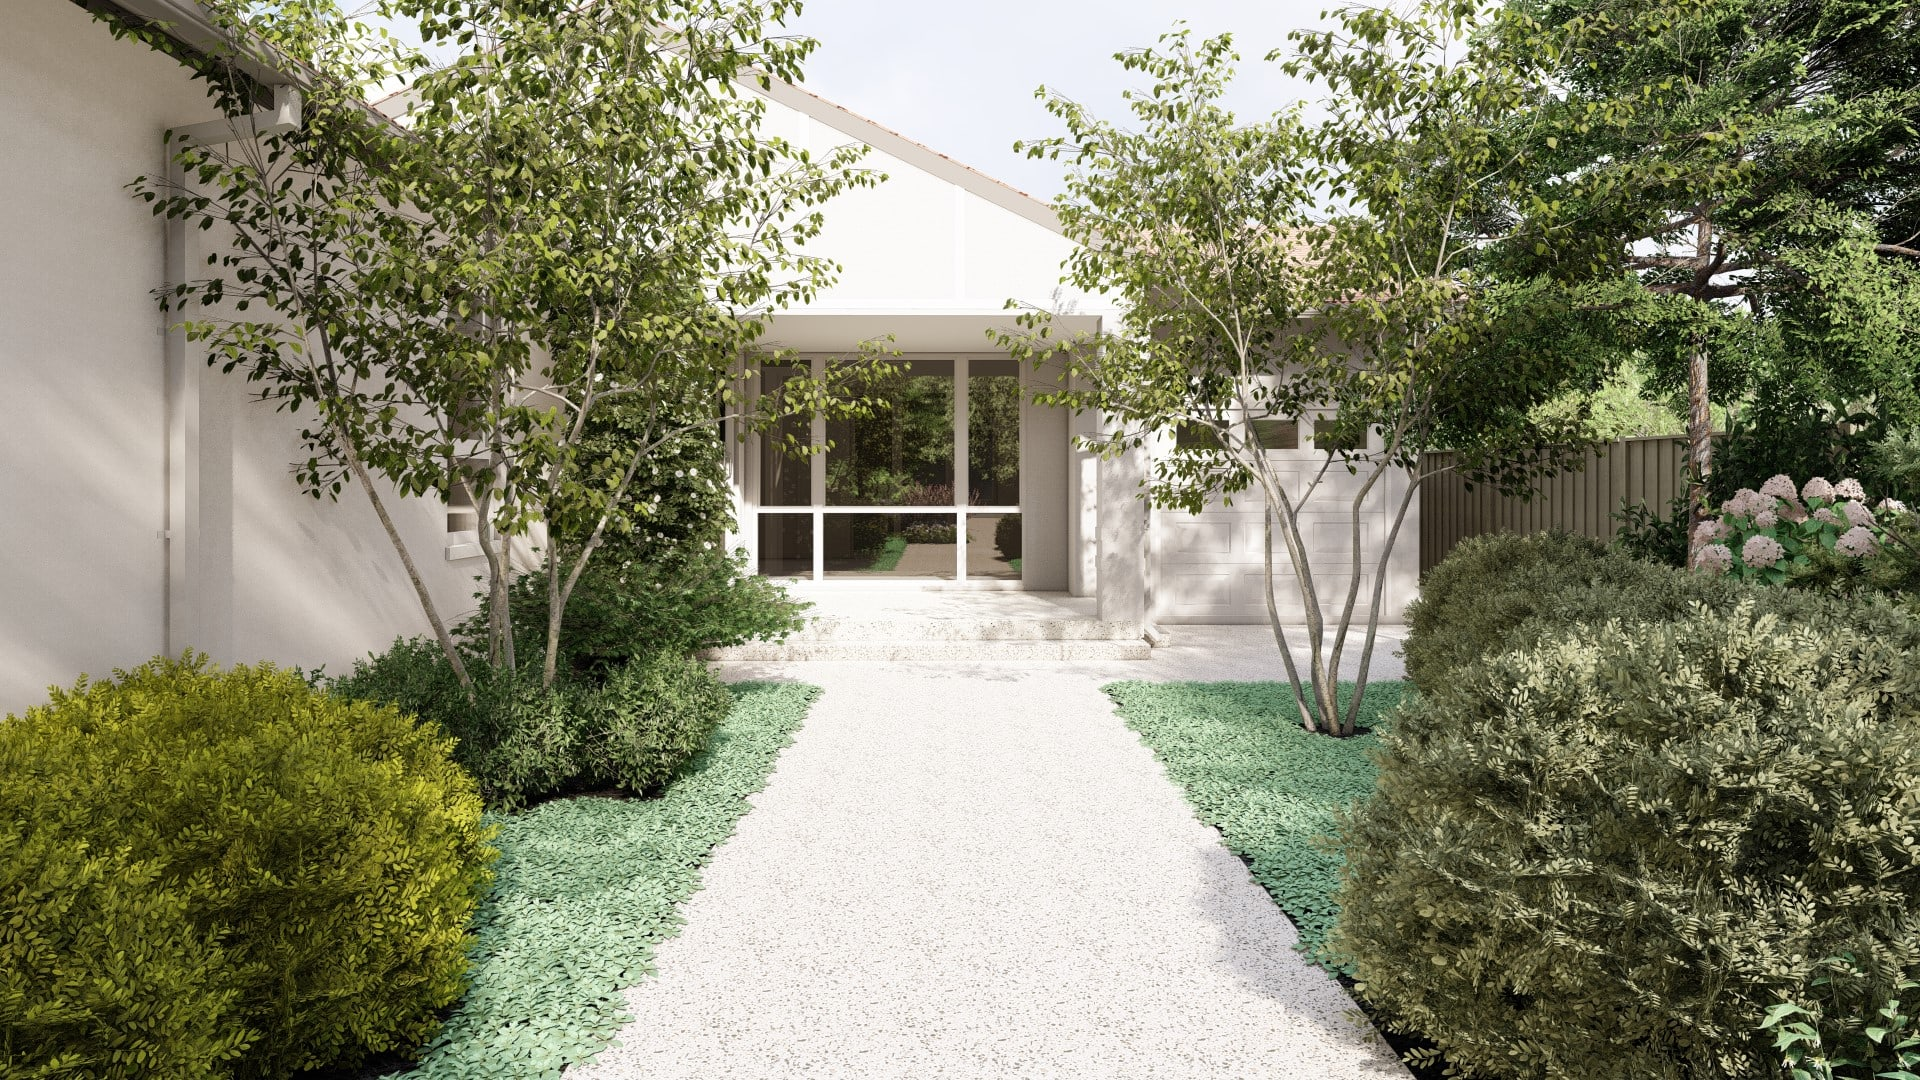 Perth Decorative Concrete verge appeal front pathway exposed aggregate driveway applecross landscaping designer